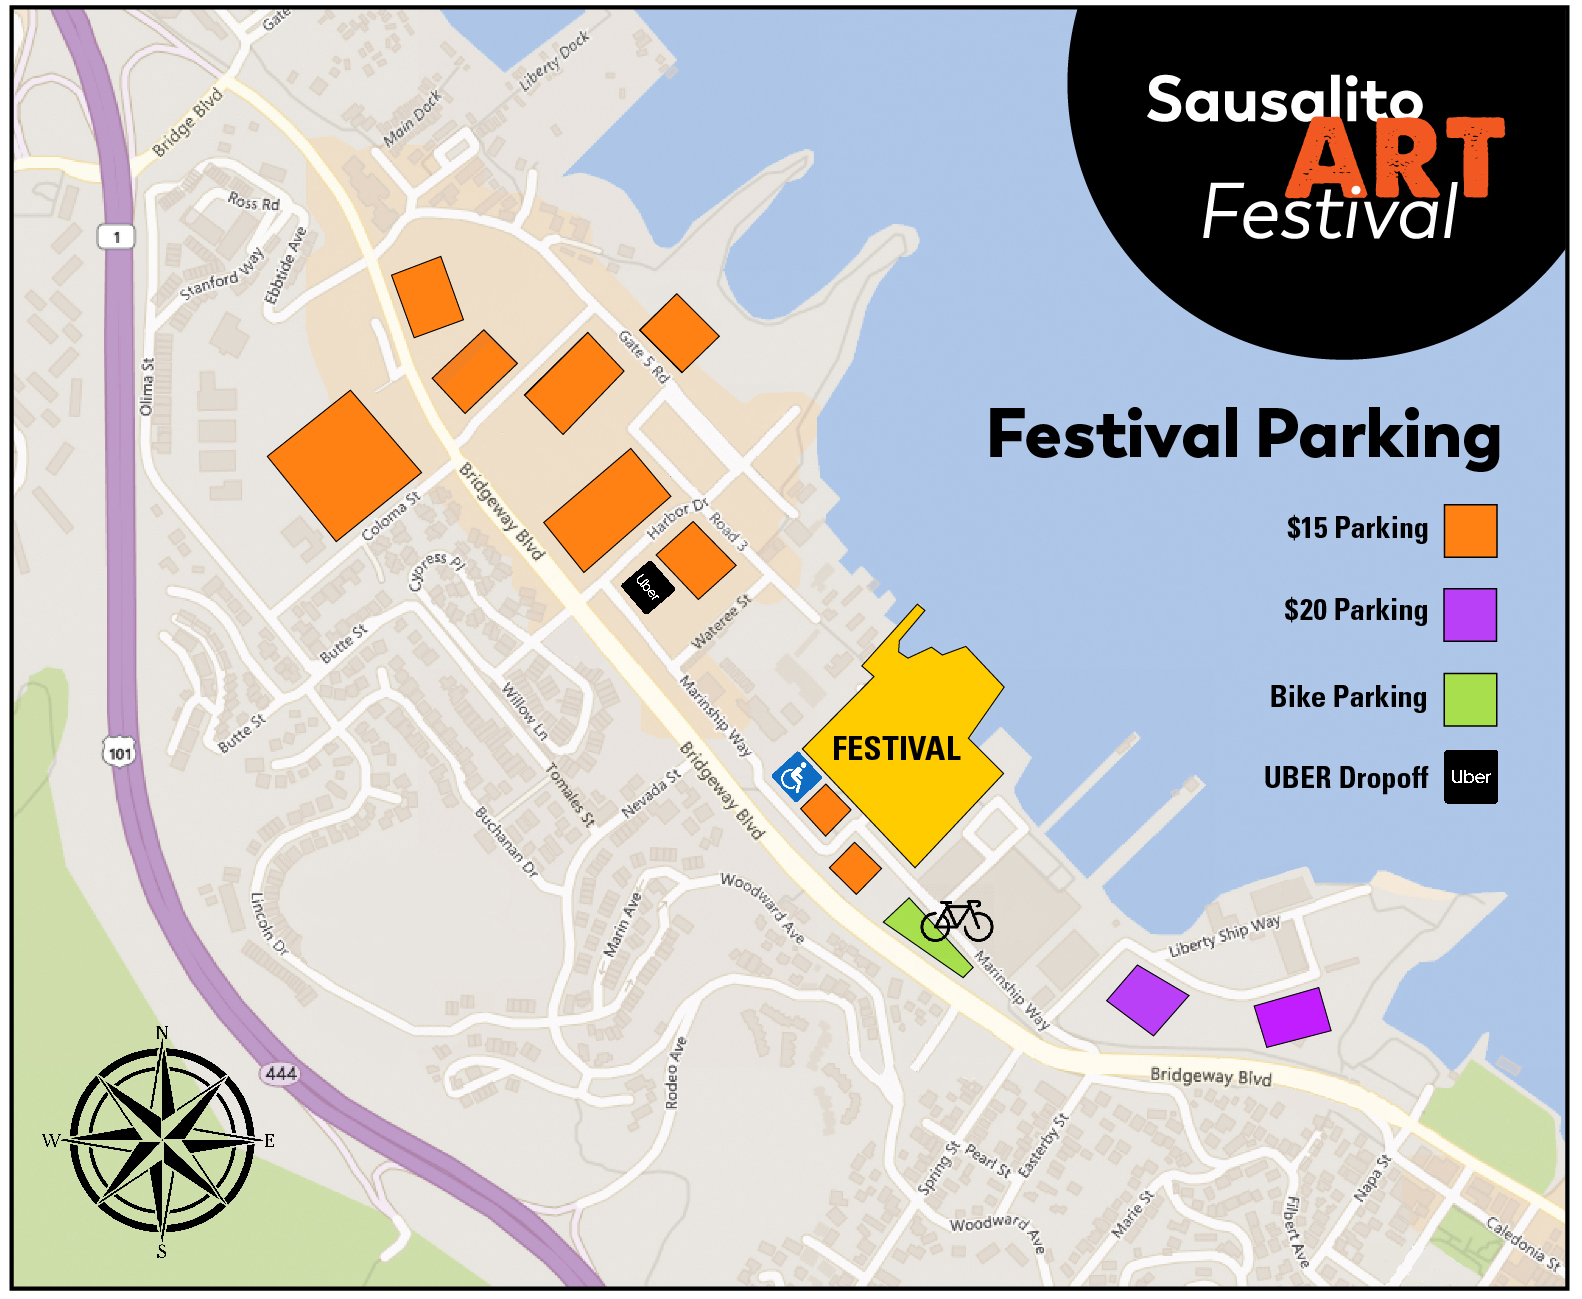 Festival Information — Sausalito Art Festival on sausalito ca on map, sausalito bay area map, mill valley ca map, sausalito restaurants, sausalito downtown map, sausalito hotels, sausalito street map,